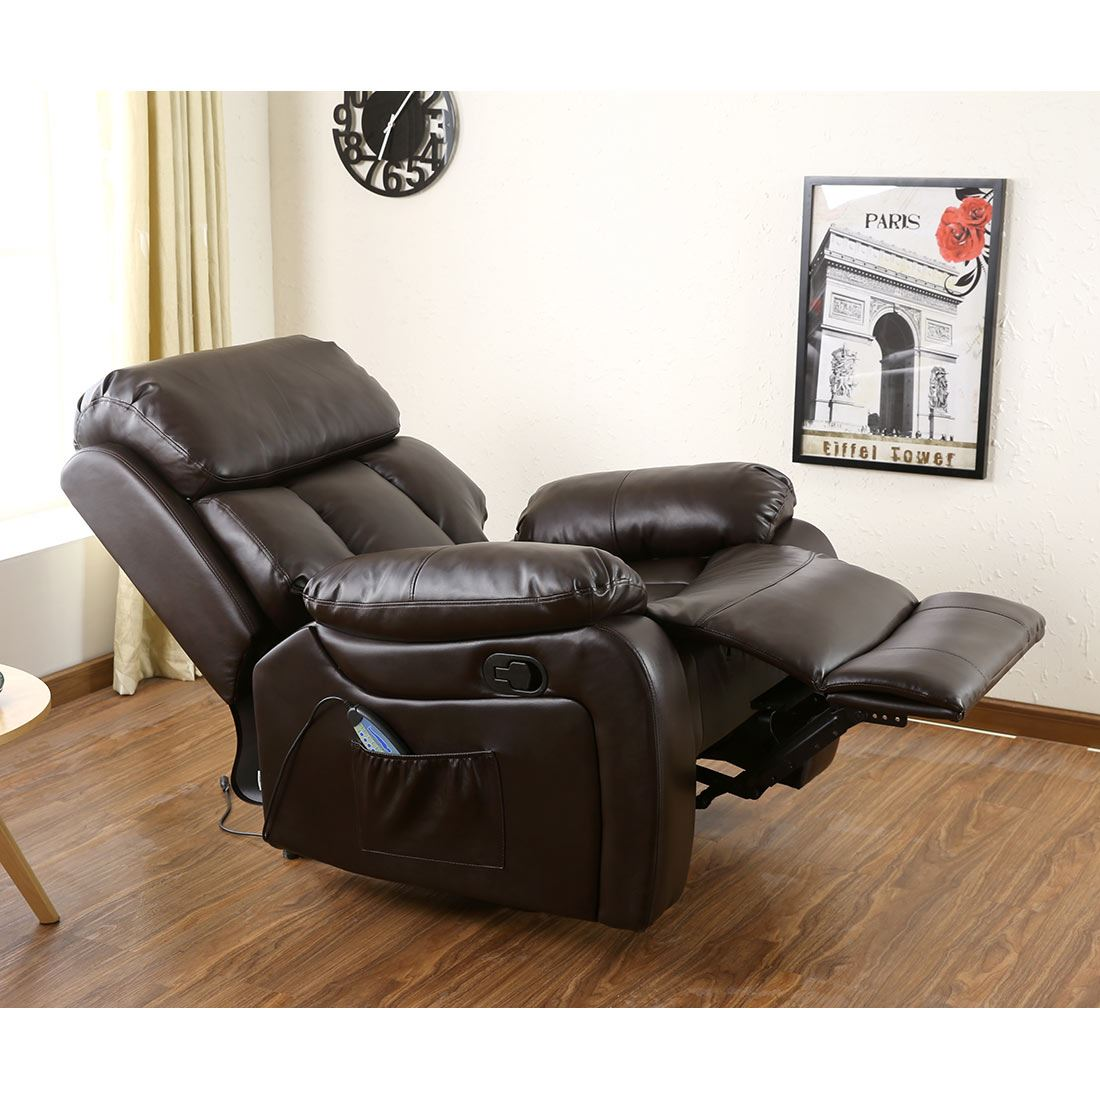 Attrayant CHESTER HEATED LEATHER MASSAGE RECLINER CHAIR SOFA LOUNGE